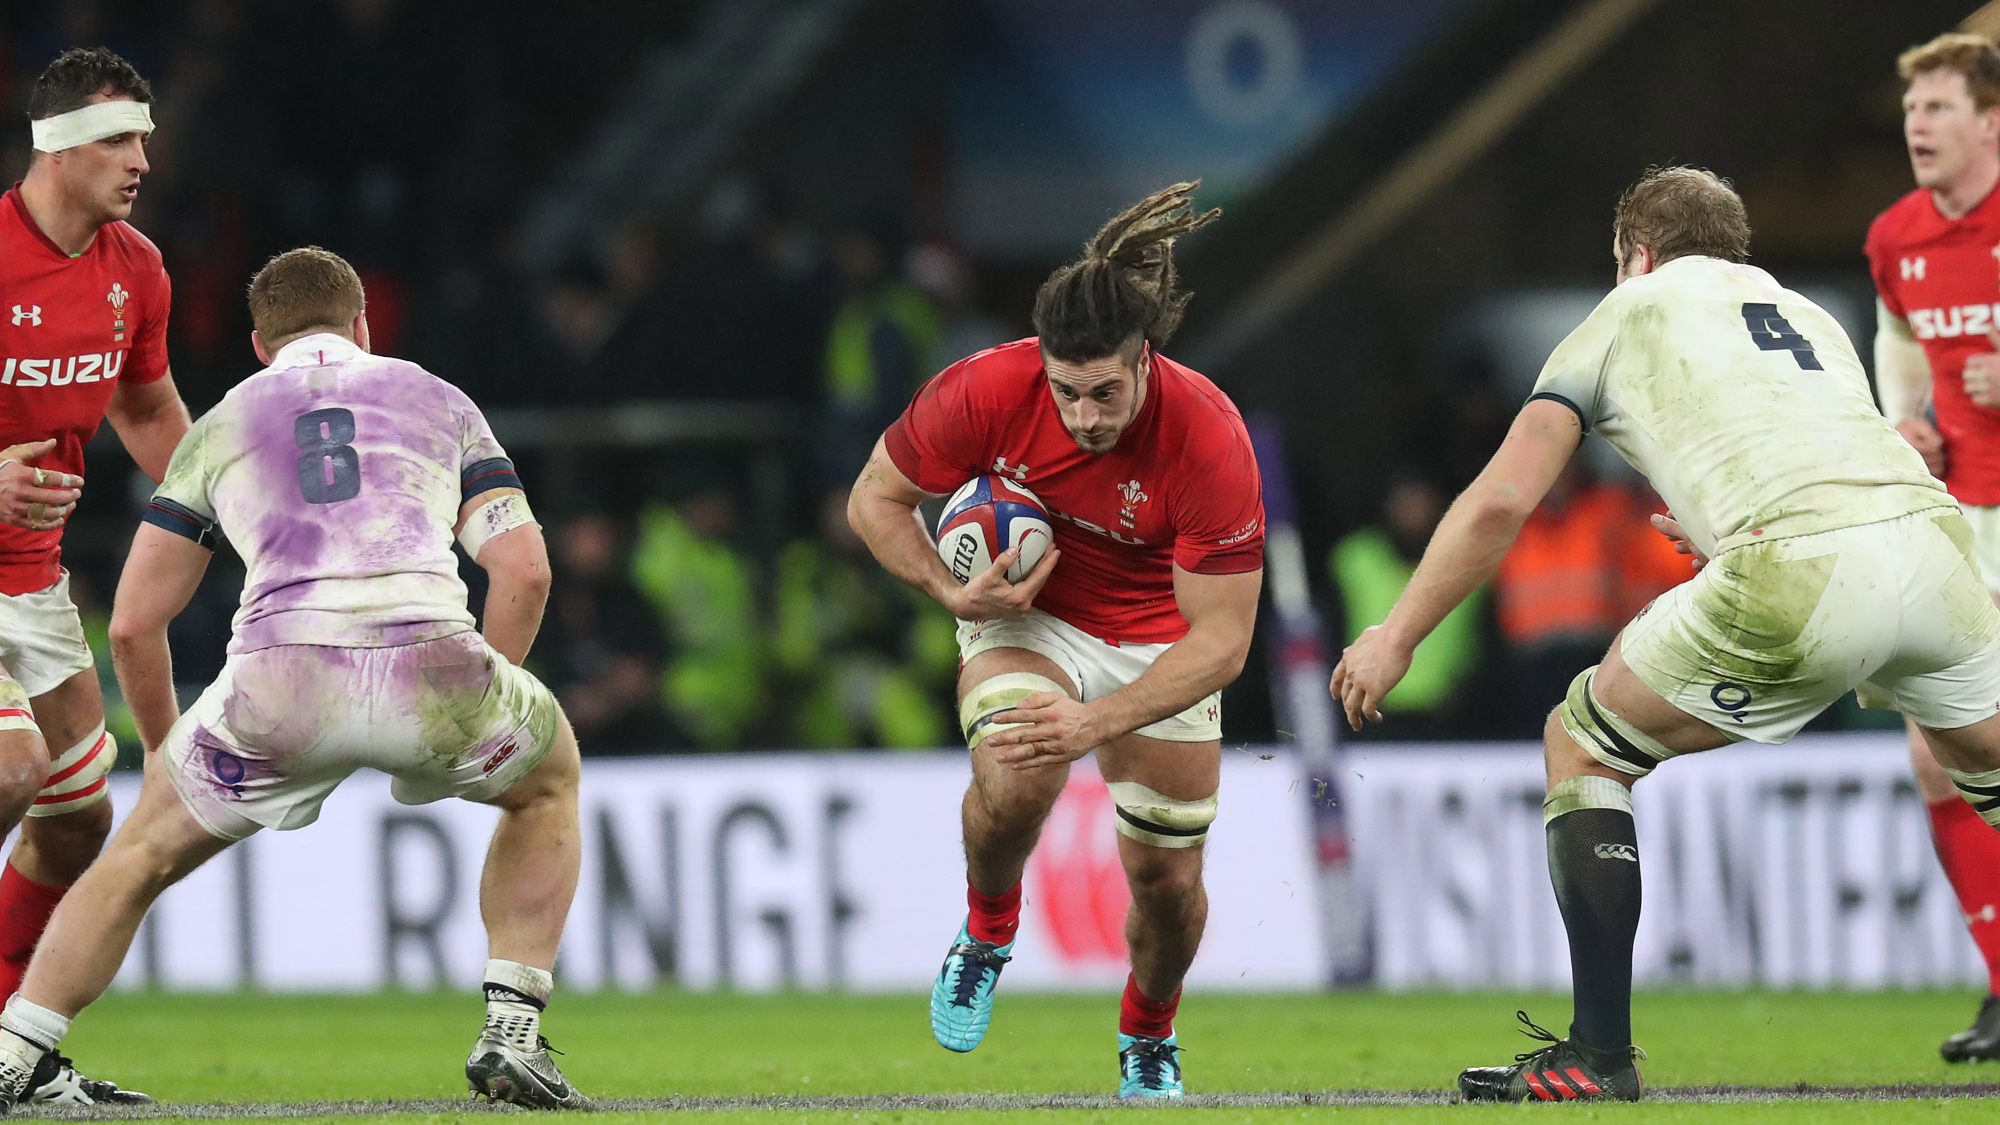 European heavyweights clash with Six Nations stars on show